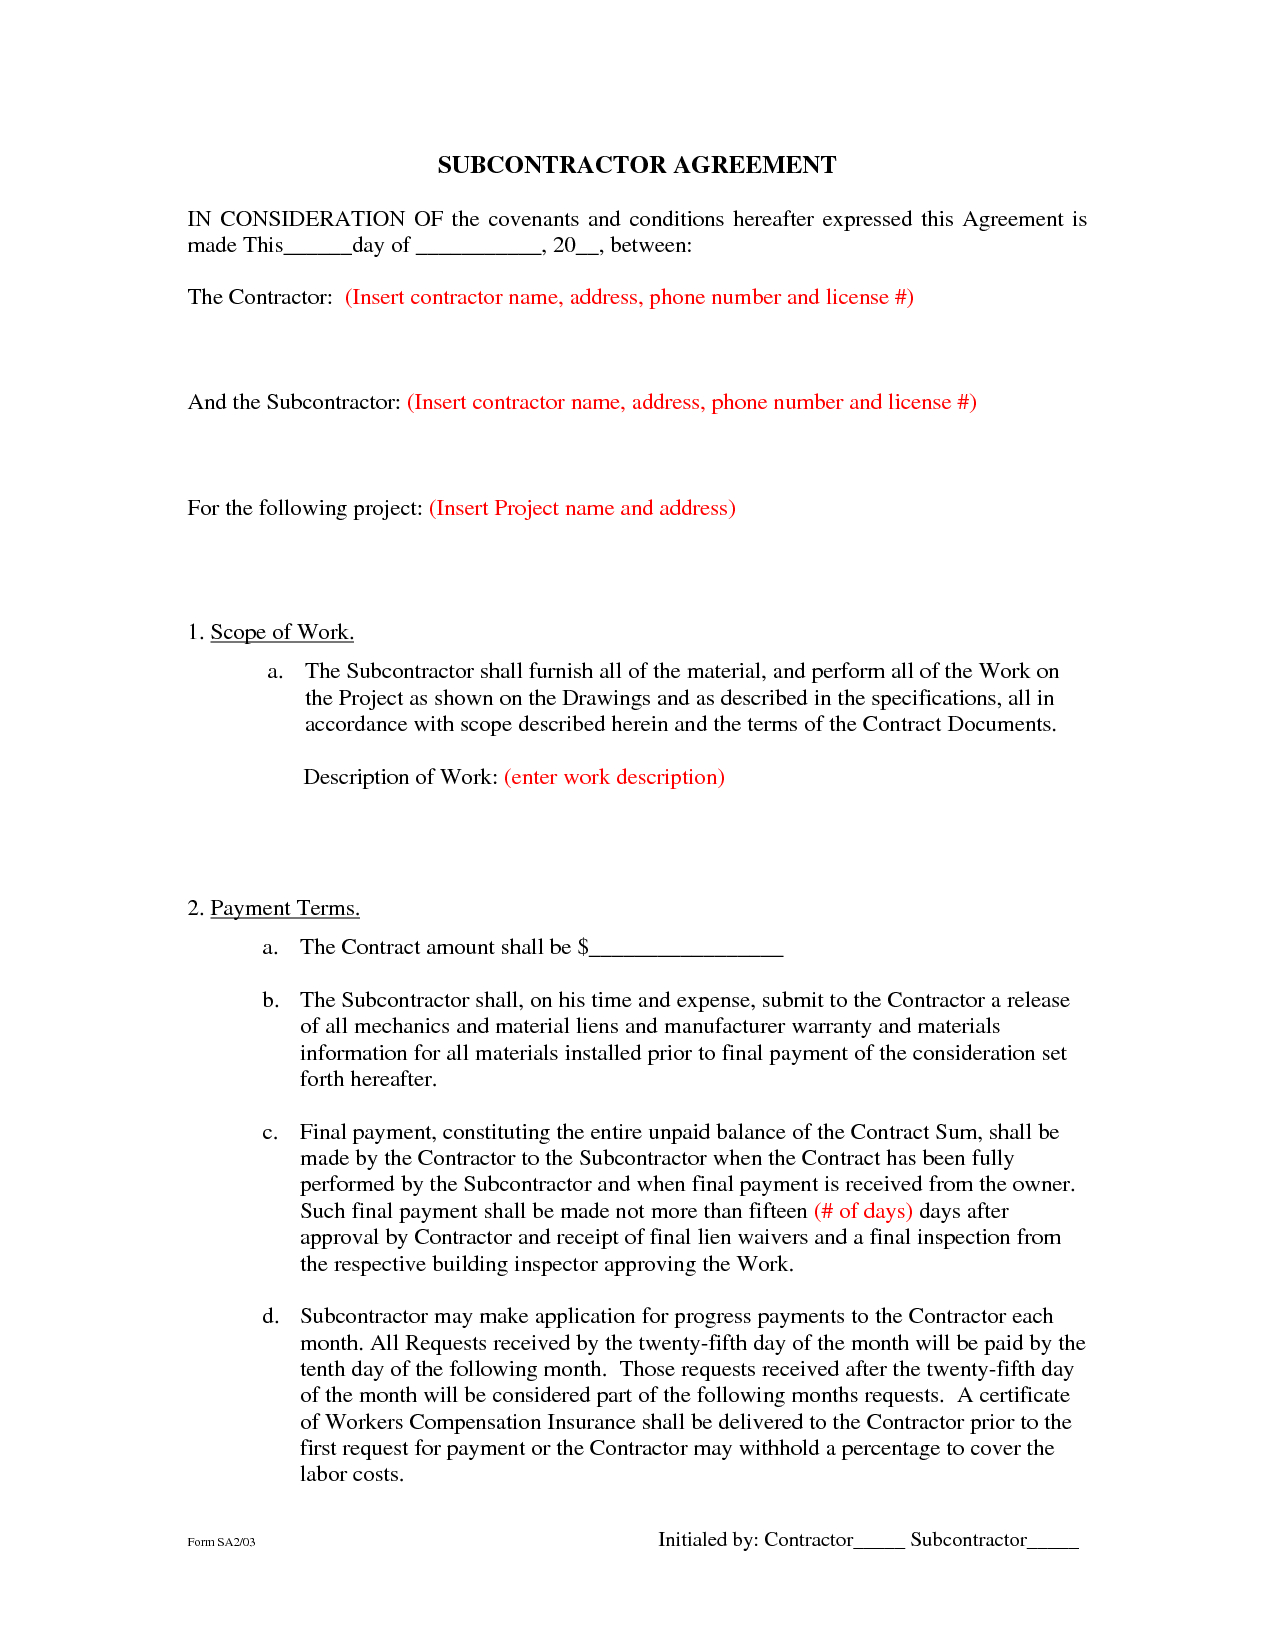 Subcontractor Agreement Formsbeunaventuralongjas - Subcontractor - Free Printable Handyman Contracts